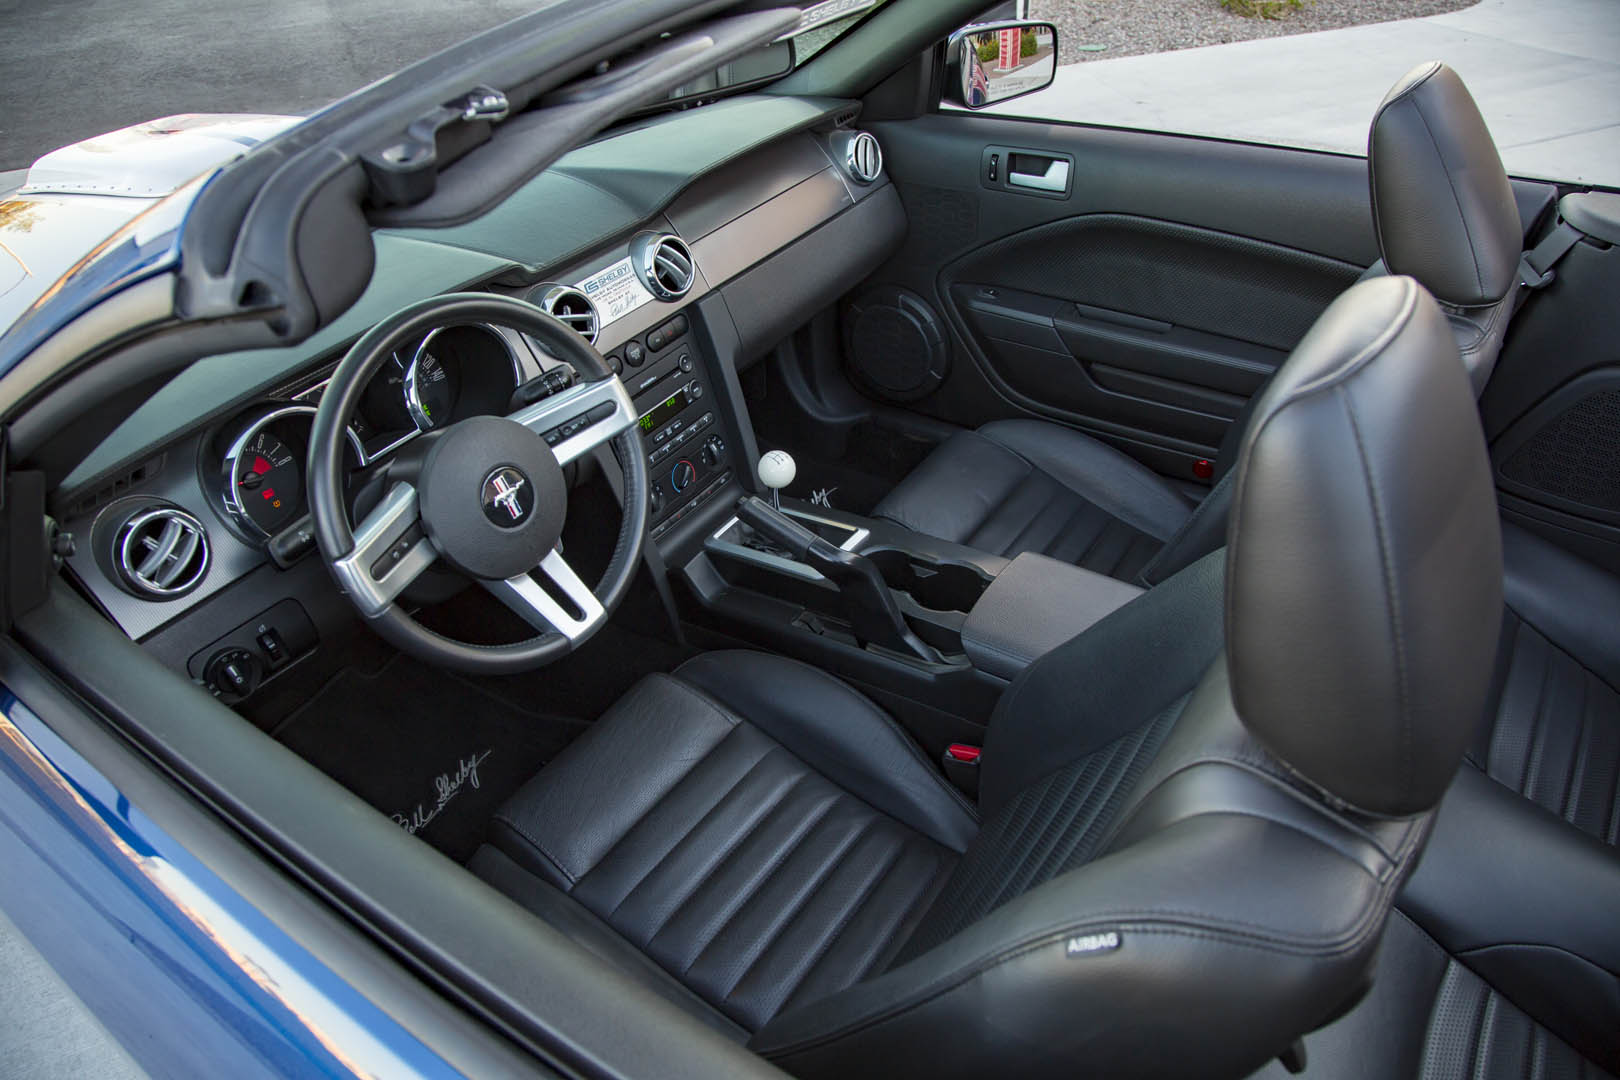 2007 Shelby GT convertible prototype interior